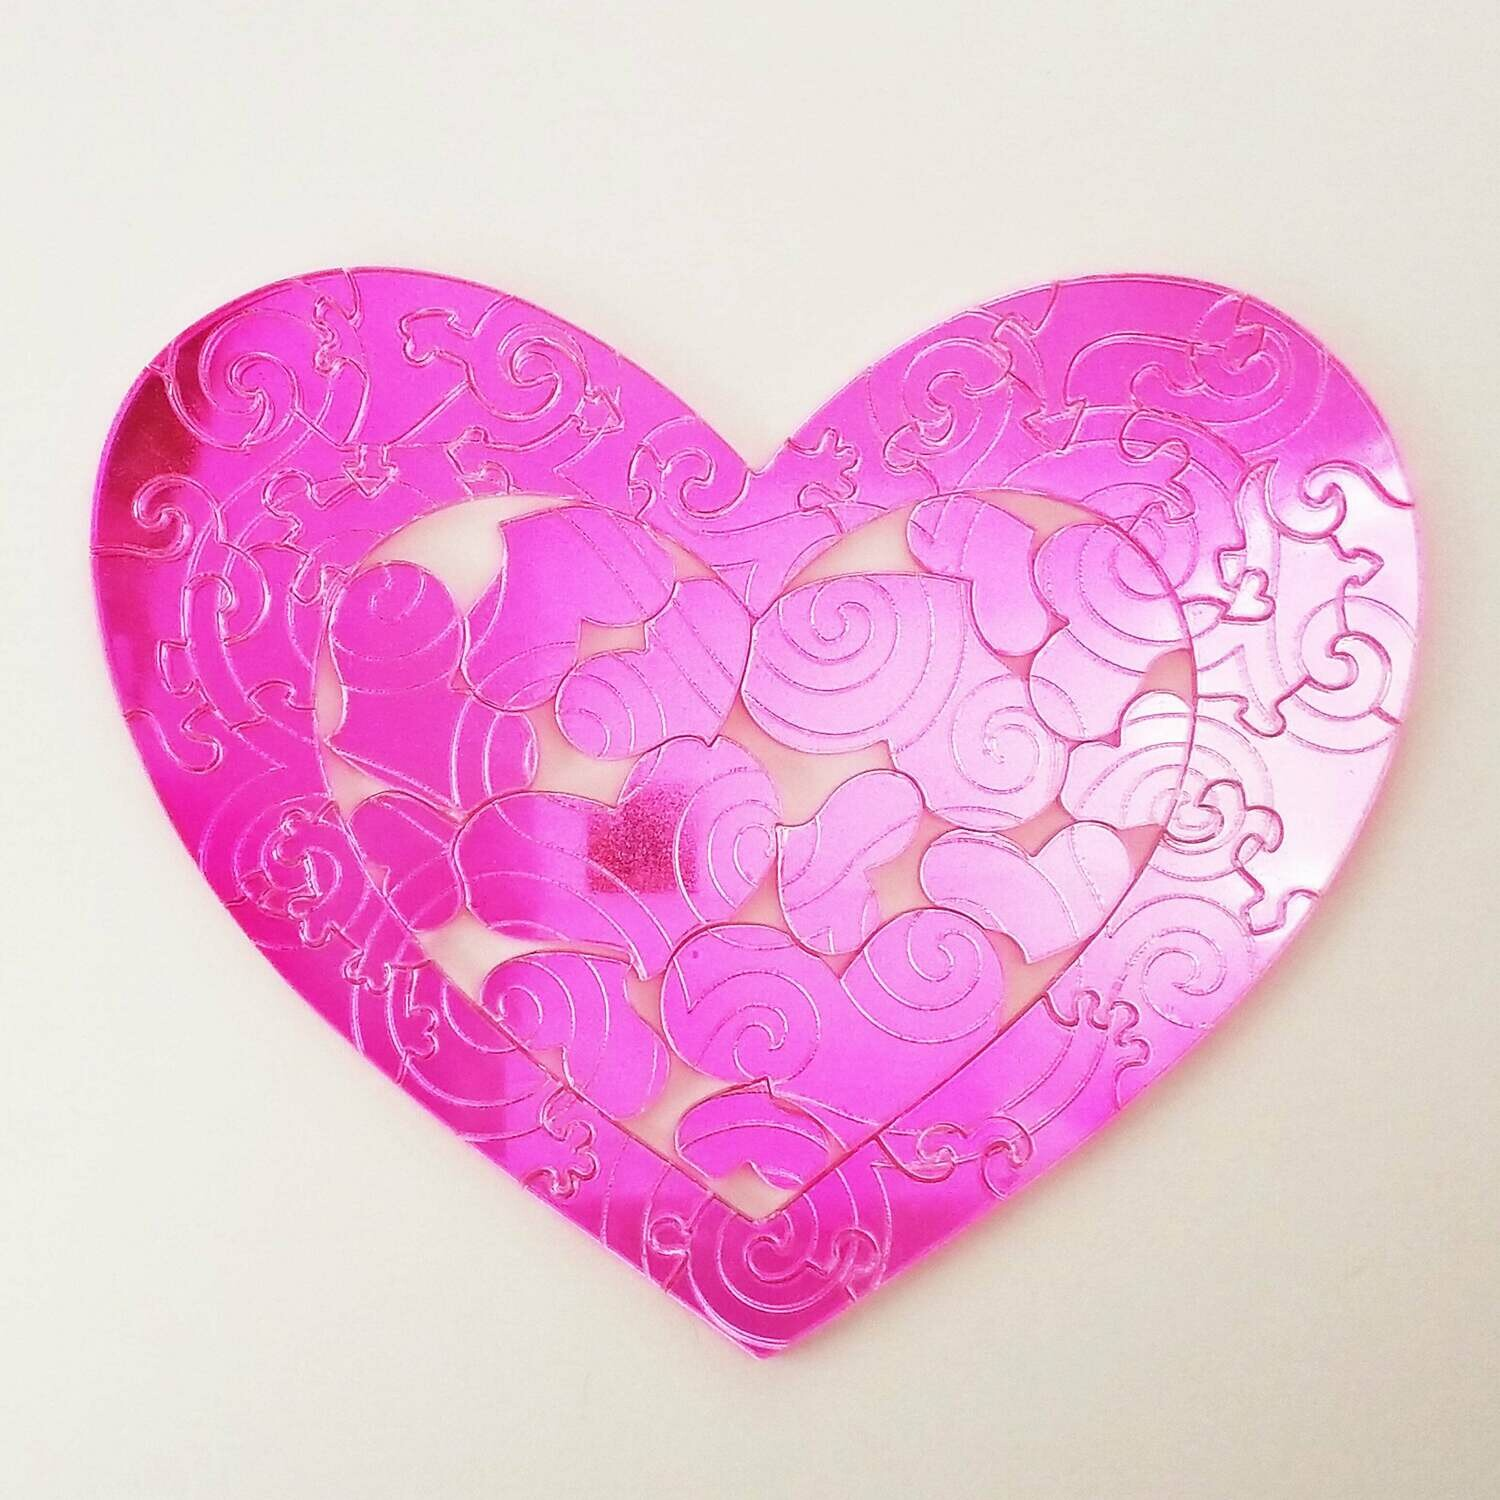 Shimmer Heart Puzzle